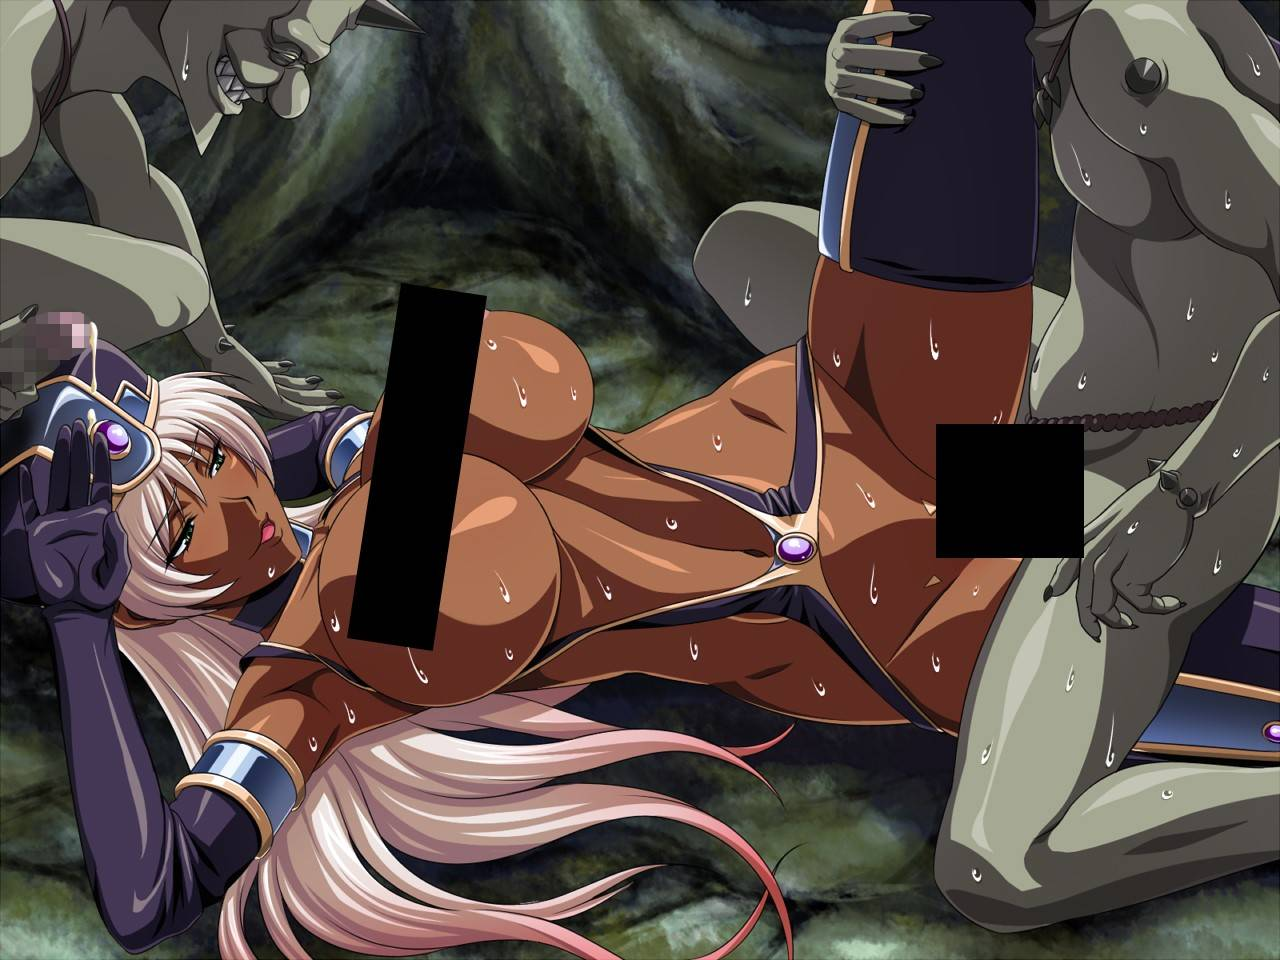 Dark World Reborn Hentai Sub-Mod 2.0